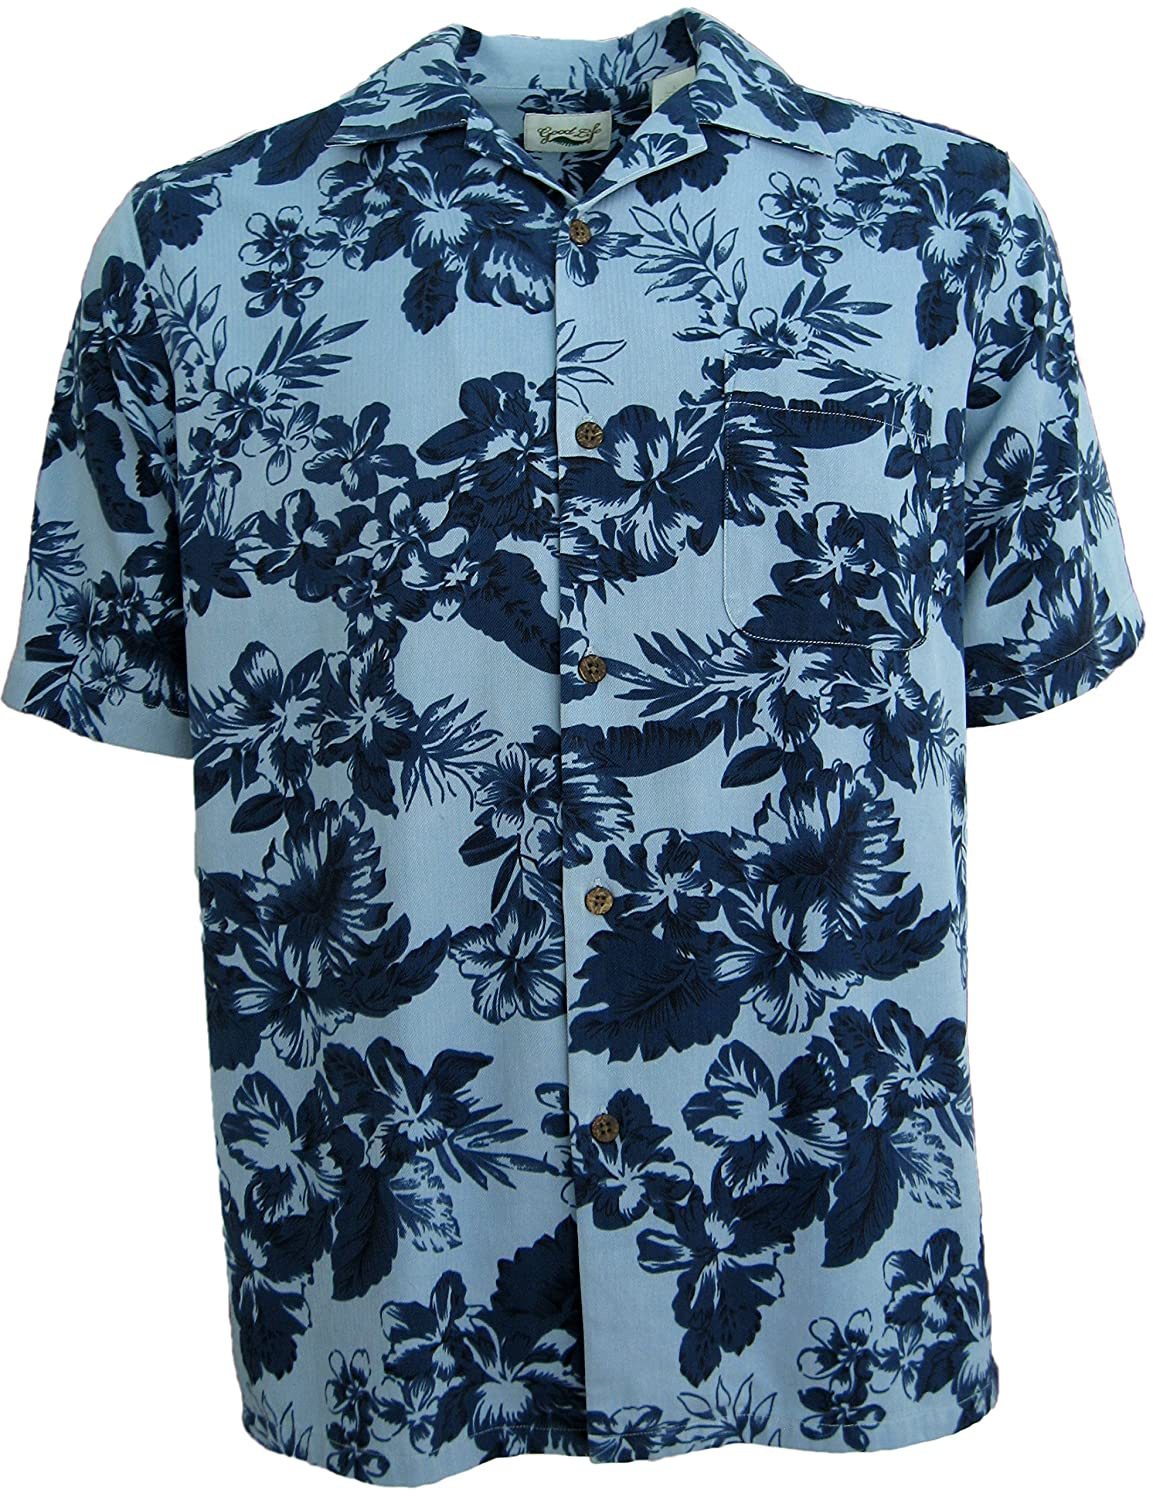 1e58c446f2 High Quality 100% Silk Camp Shirt - Short Sleeves- Genuine Coconut Buttons  Please Reference this sizing guide to find your fit  Large  41-43 inch  customer ...